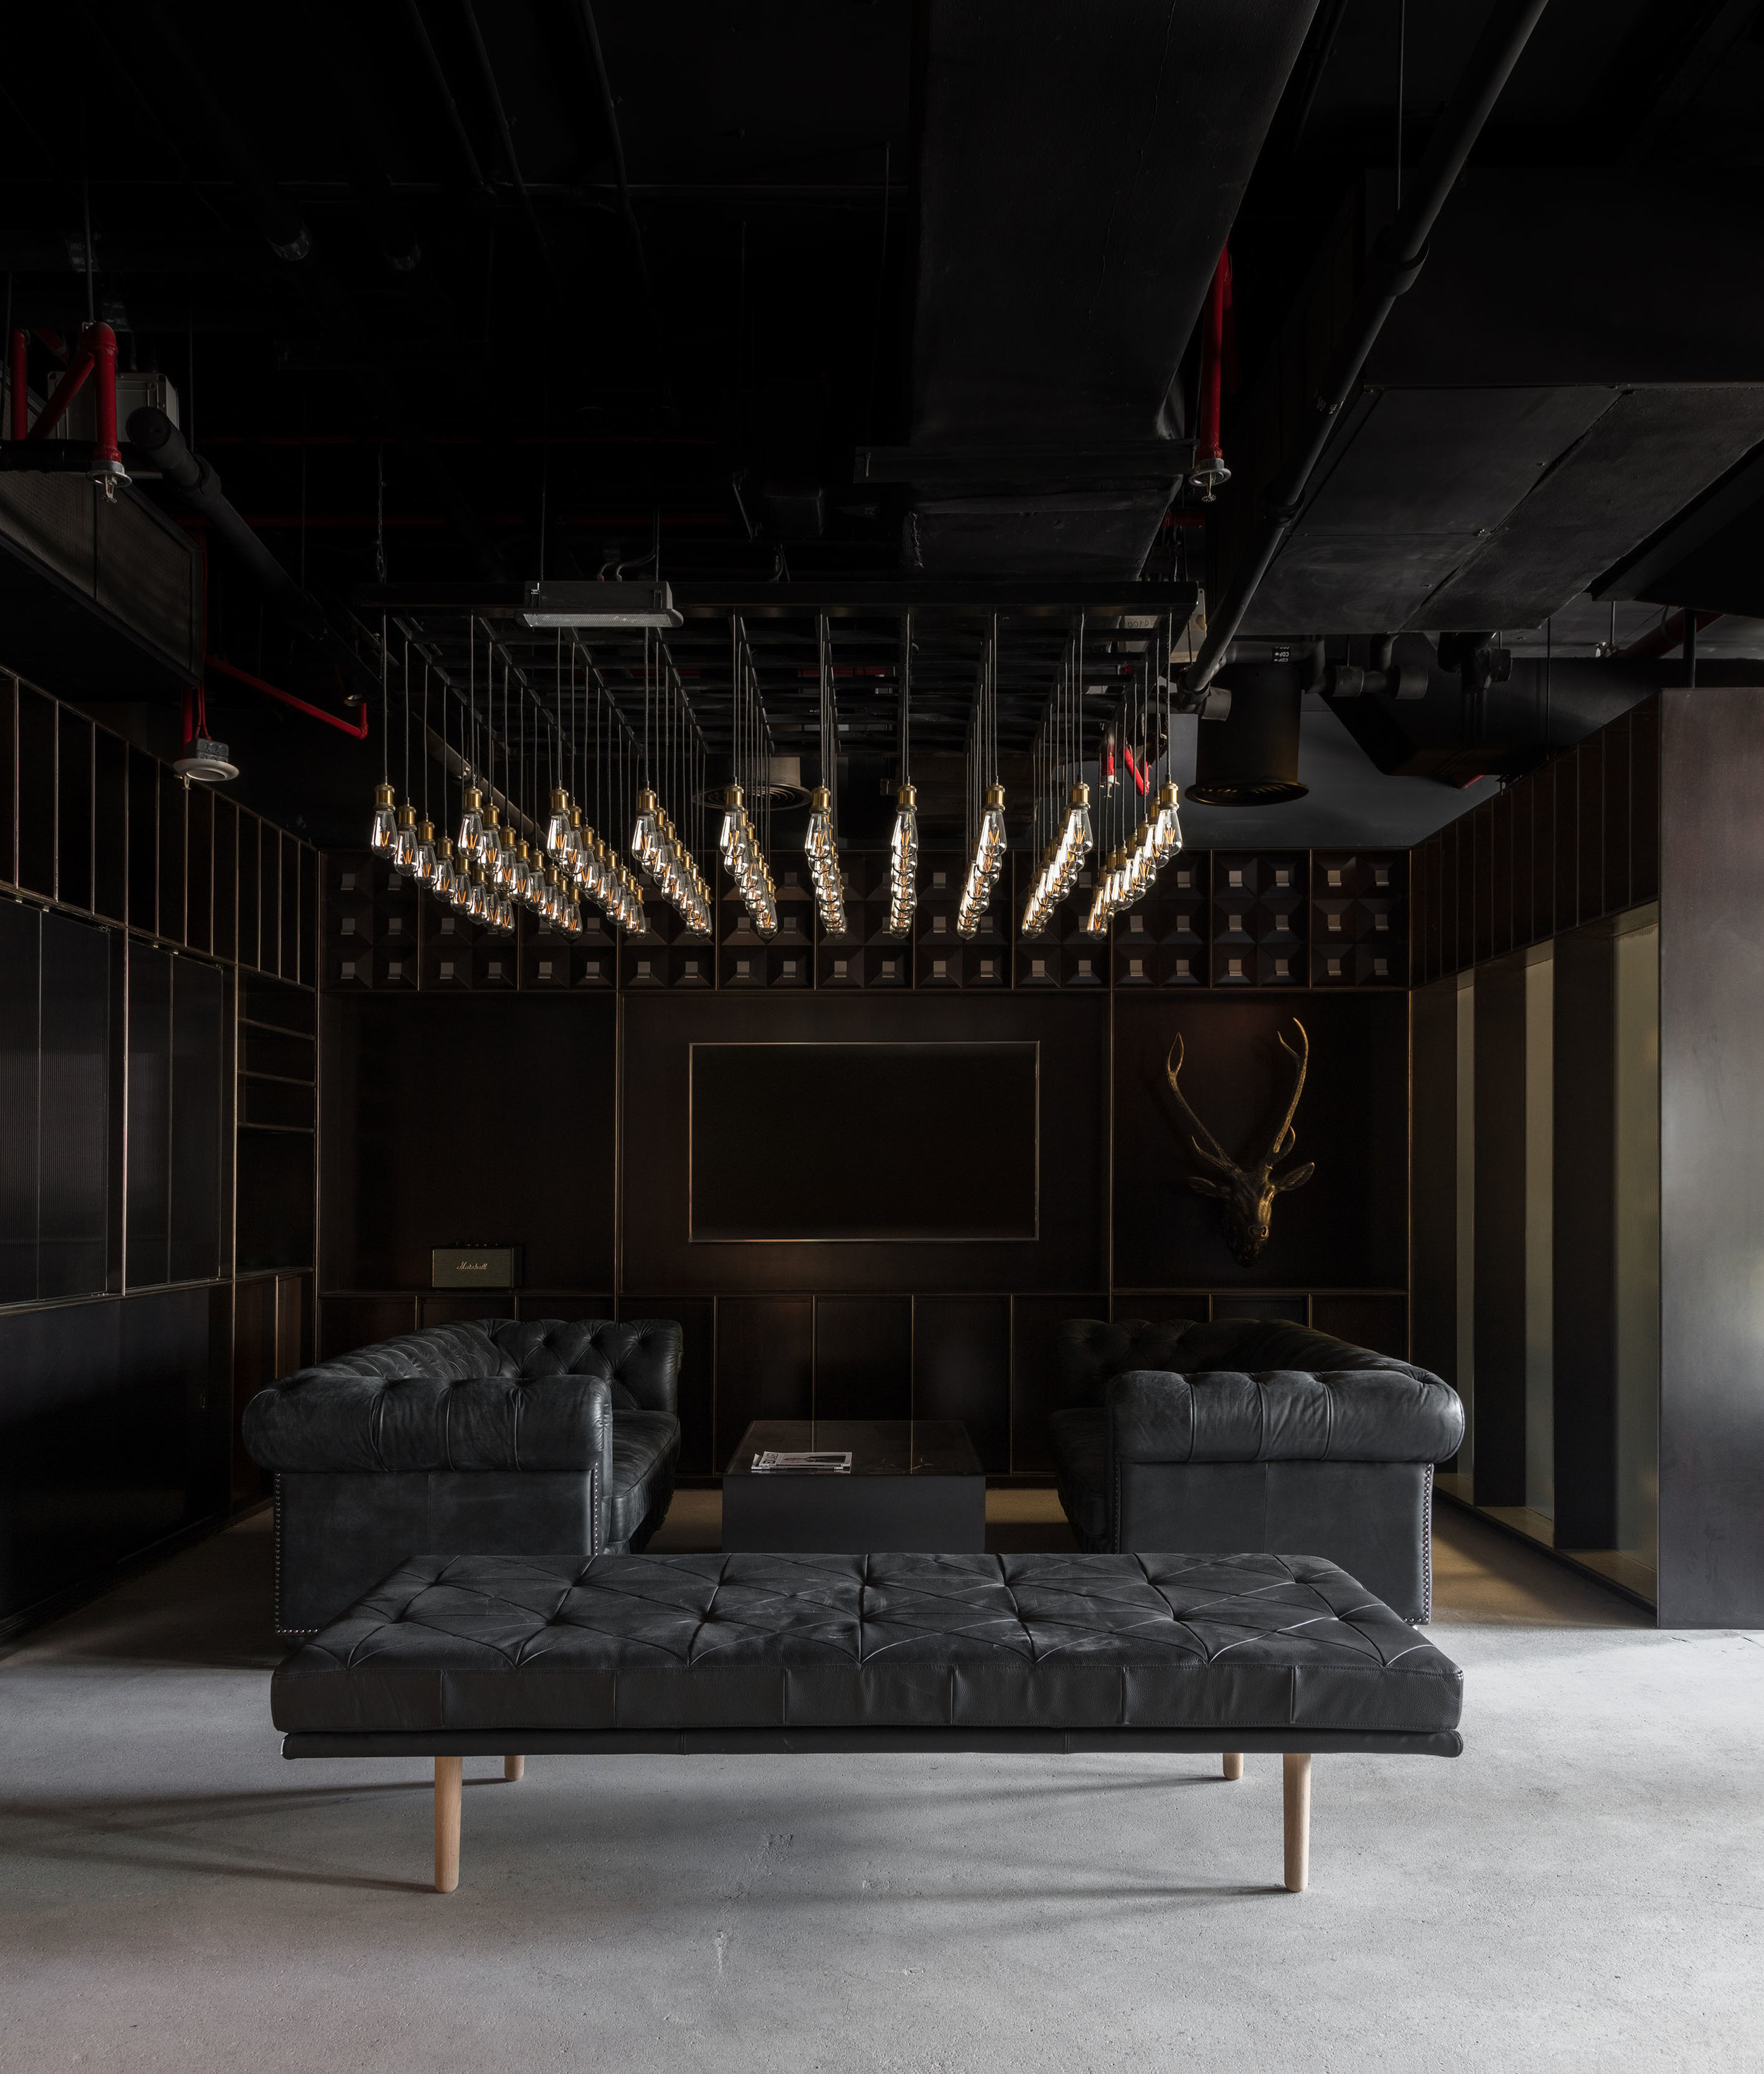 Chaps & Co-d3-Dubai-Barbershop-Lounge-Lighting-Timber-Concrete-Joinery-Design-Interior.jpg